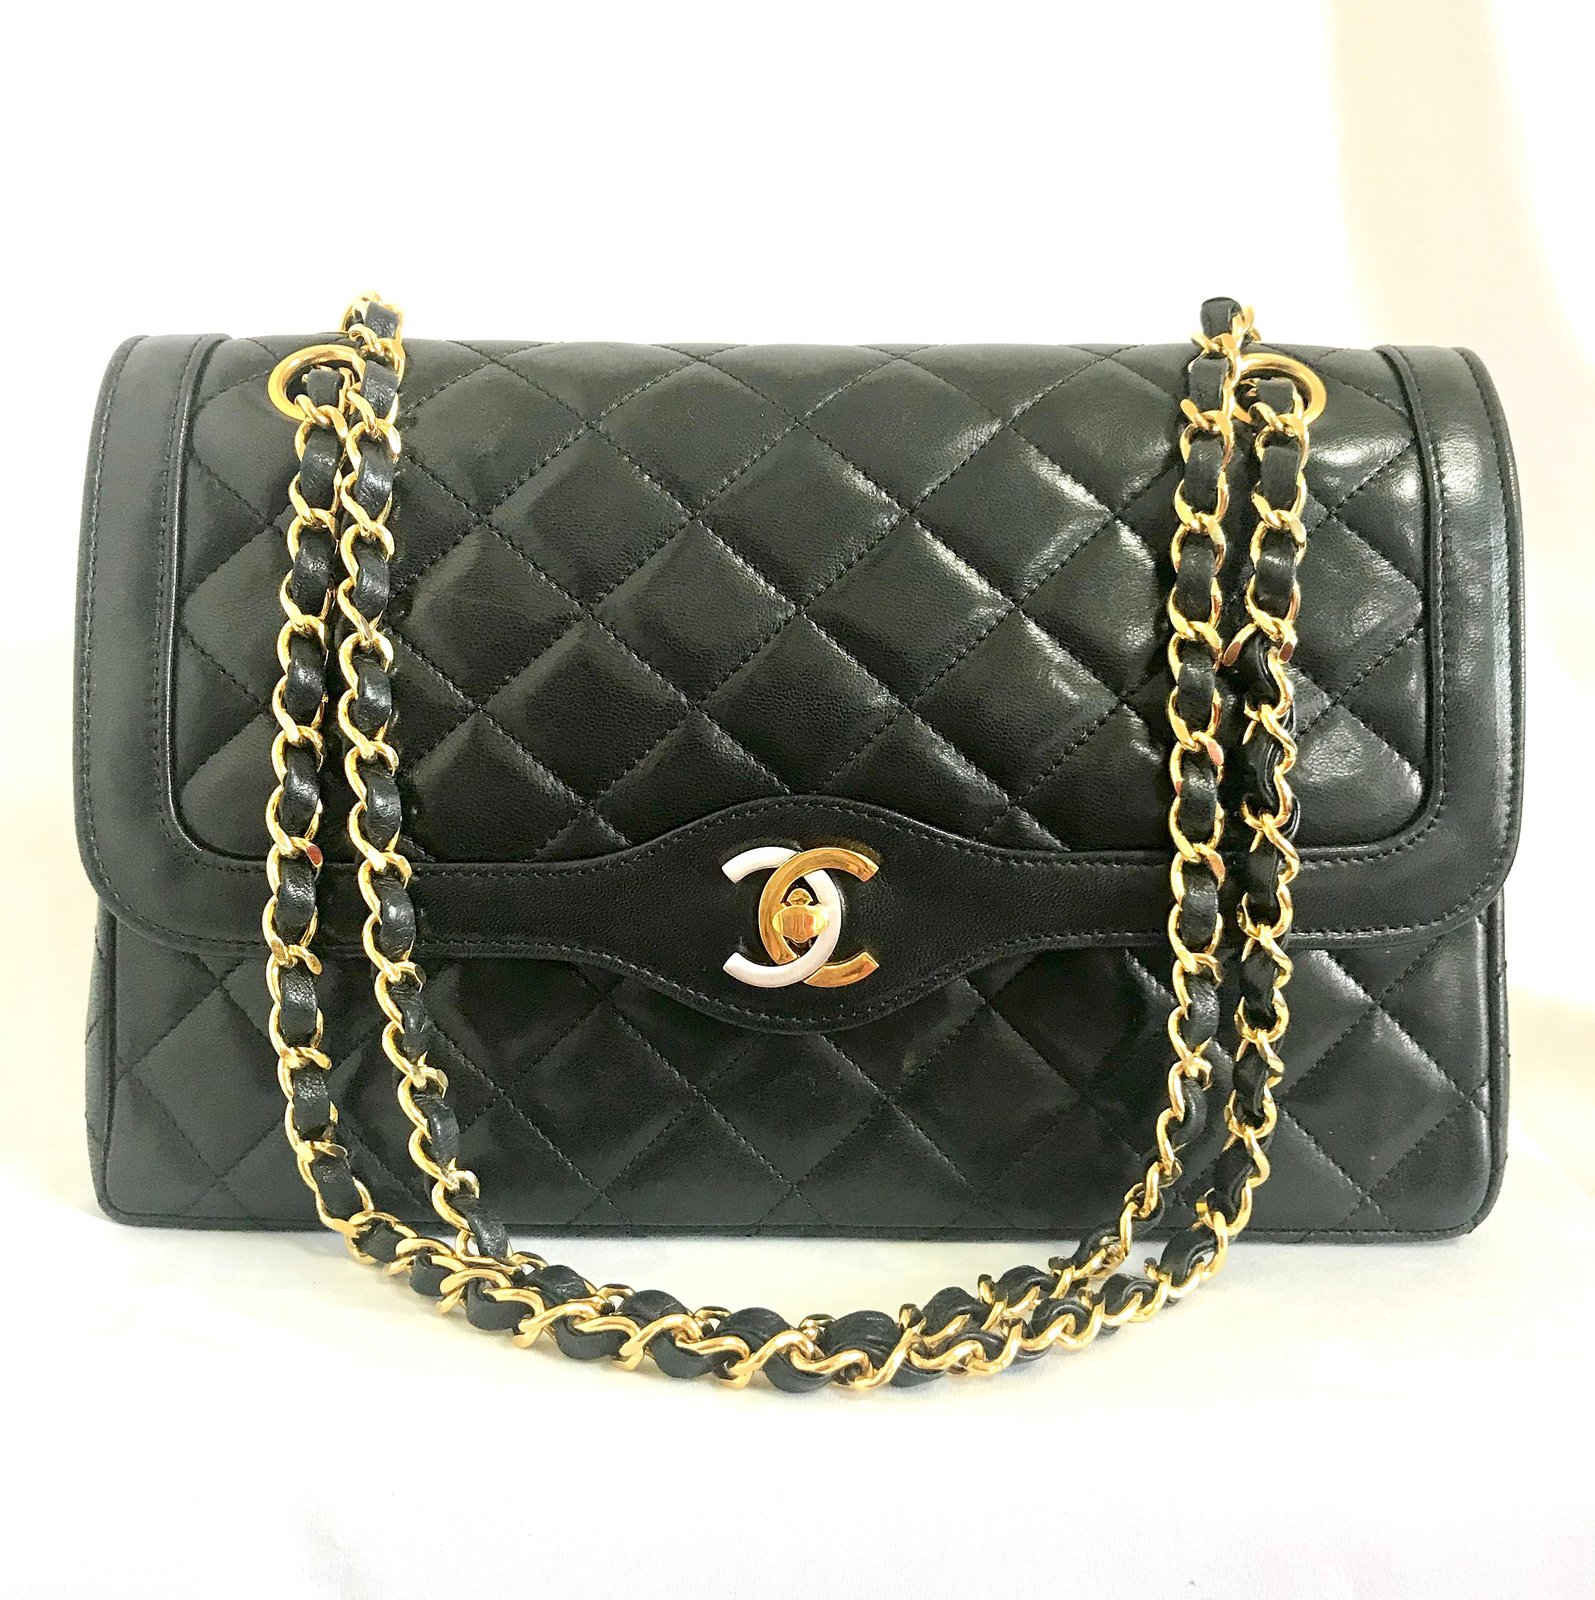 4d93a0147fd5 Il fullxfull.1526958457 6fs8. Il fullxfull.1526958457 6fs8. Previous. Vintage  Chanel black 2.55 classic double flap bag ...